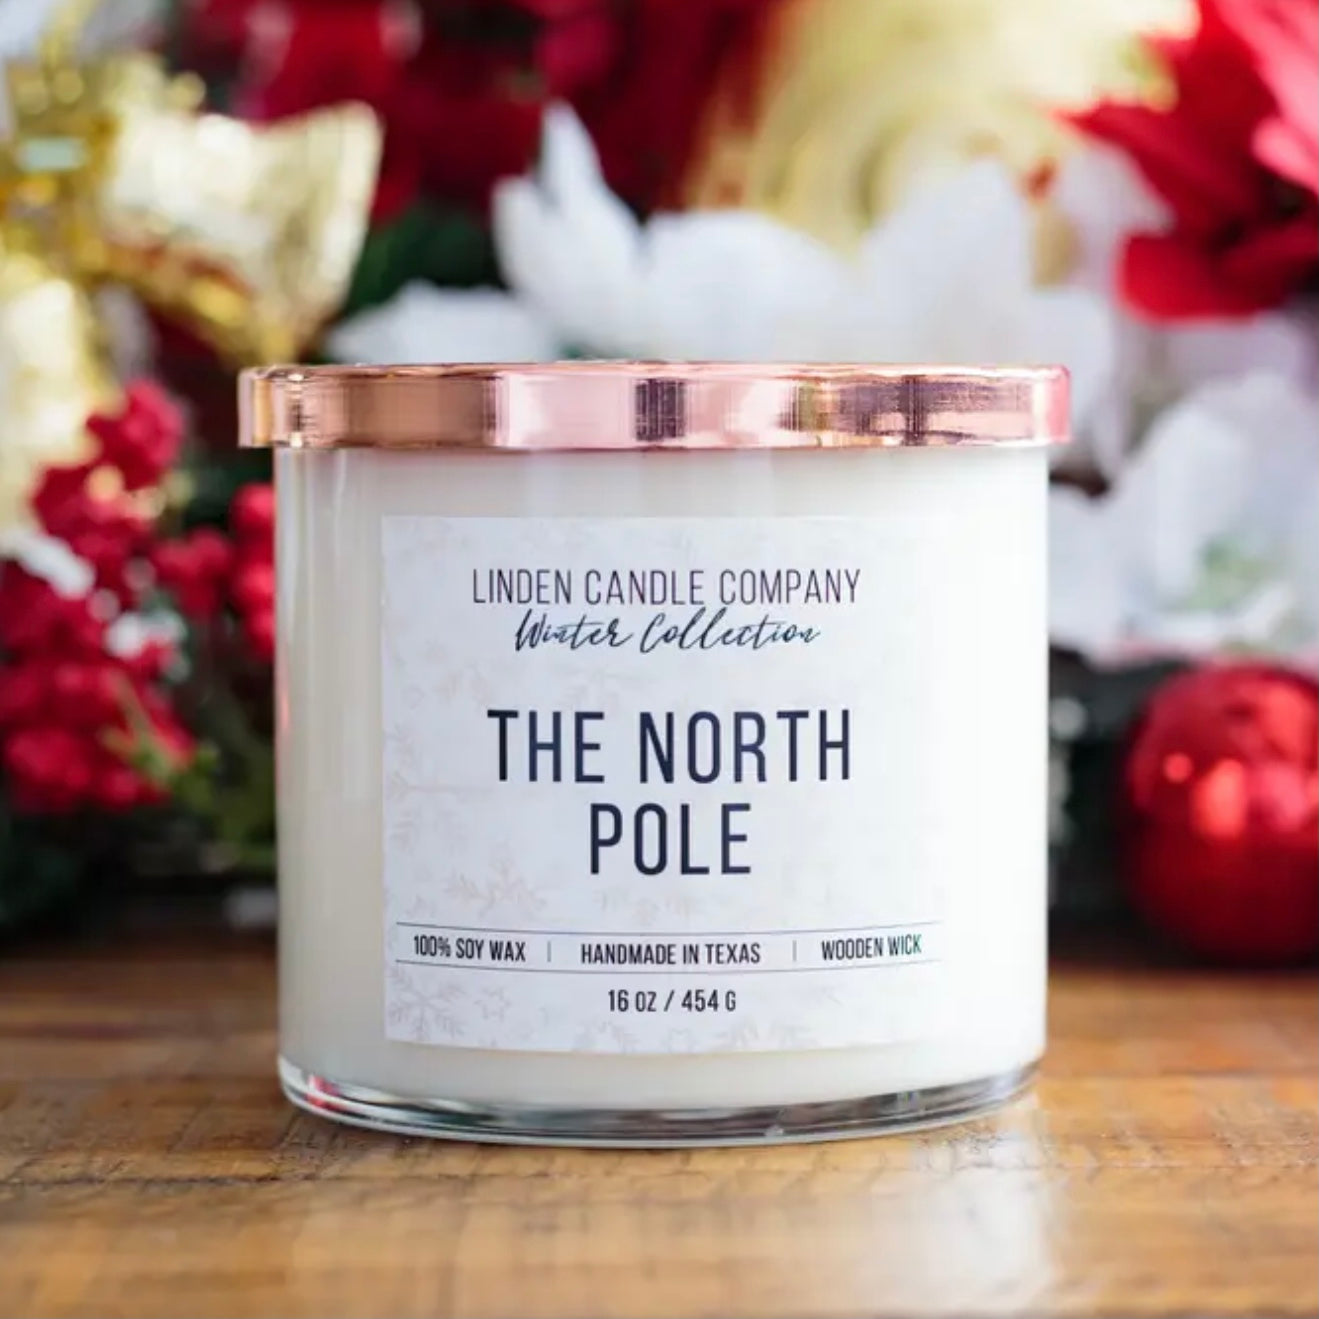 Linden Candle Co. Winter Scents